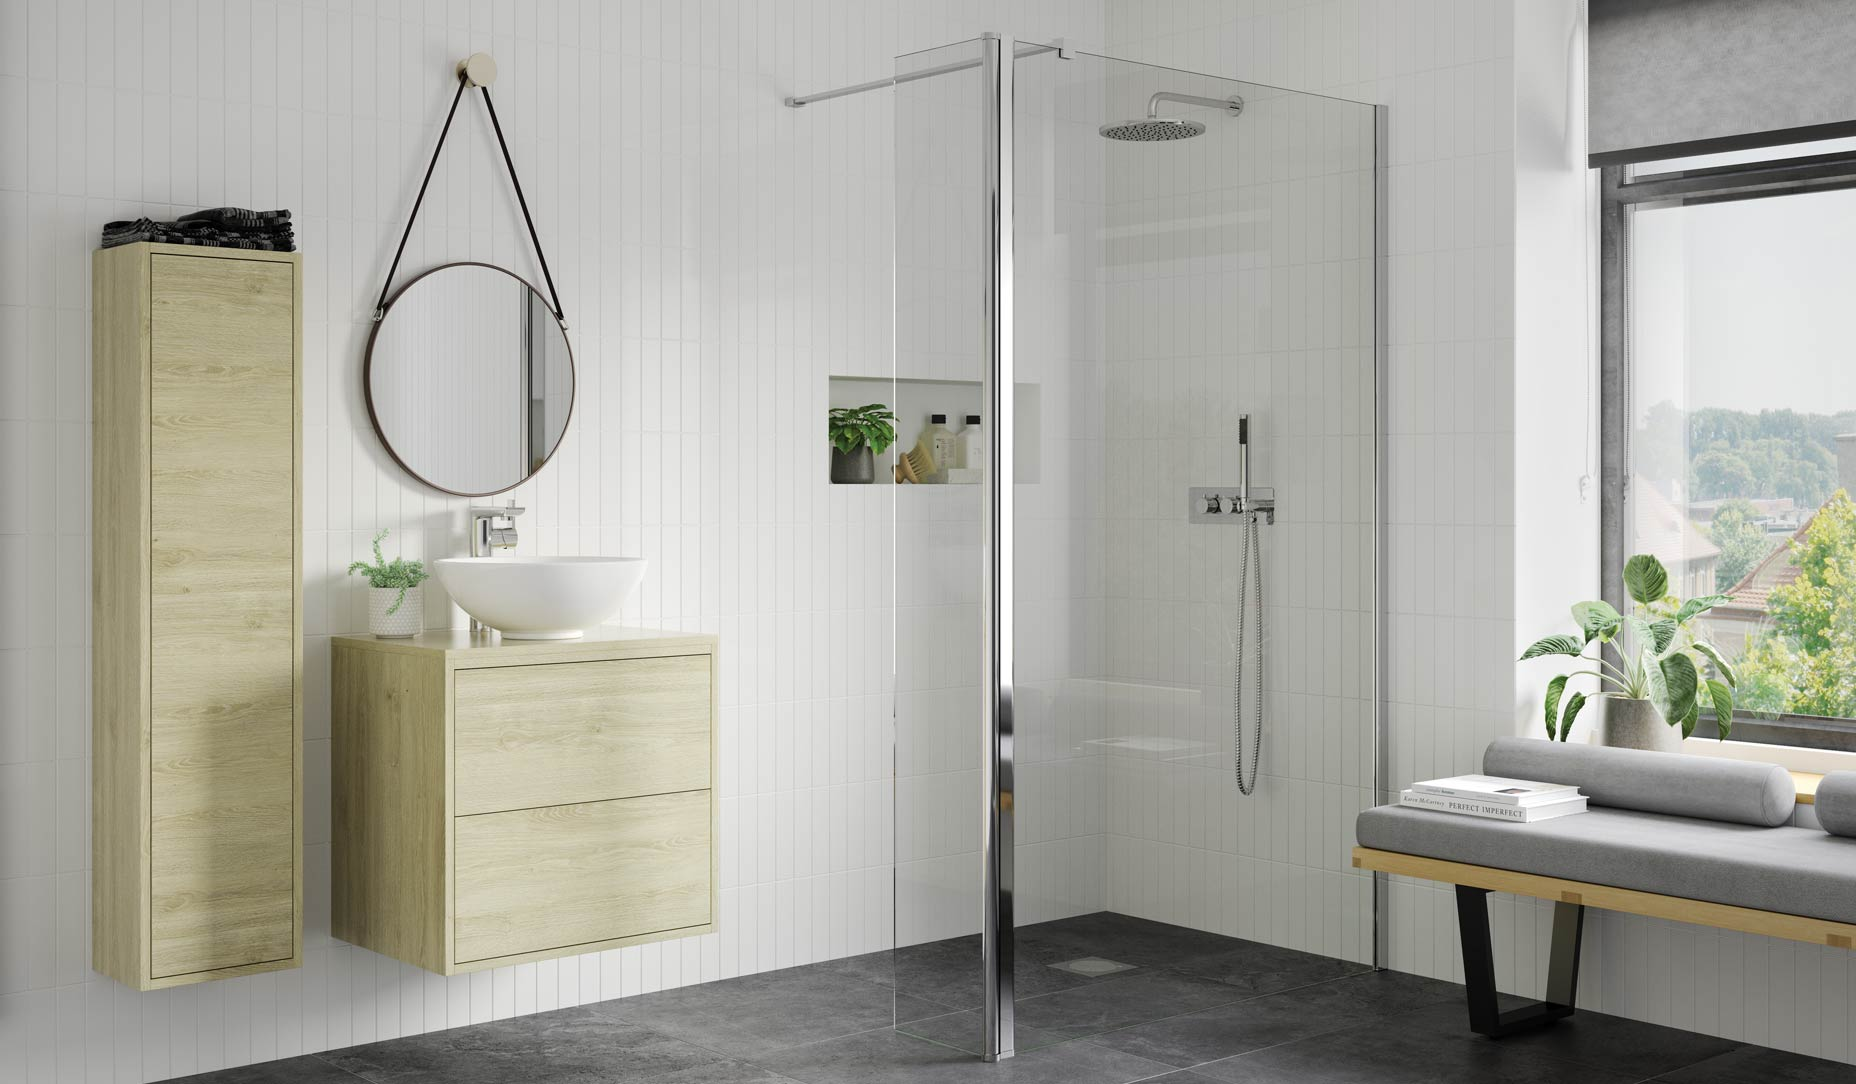 RefleXion Iconix Wetroom panel with 300mm rotatable return shown